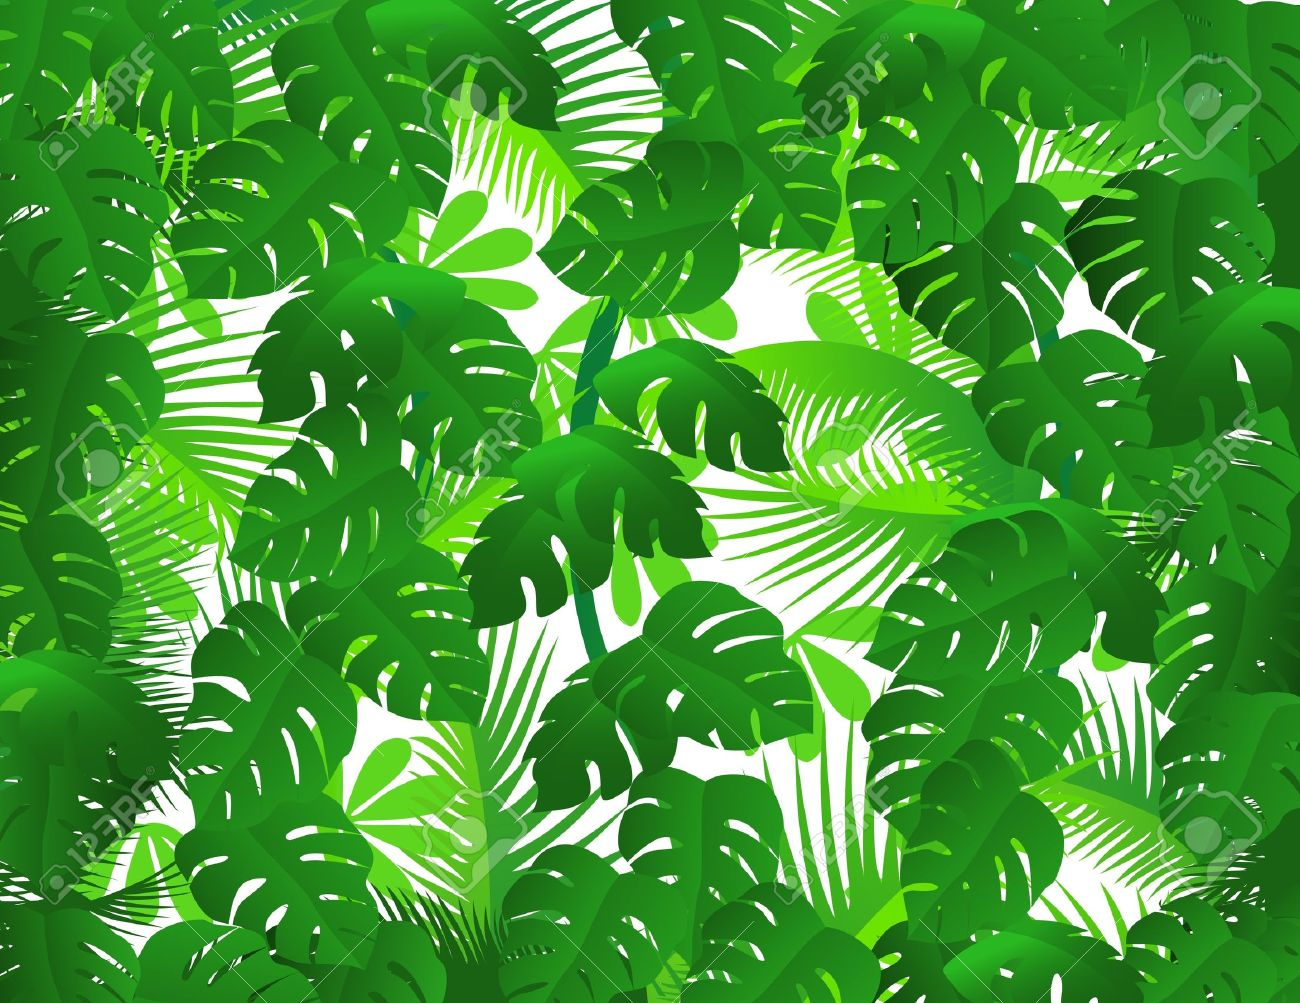 Tropical Rainforest Clipart - Synkee